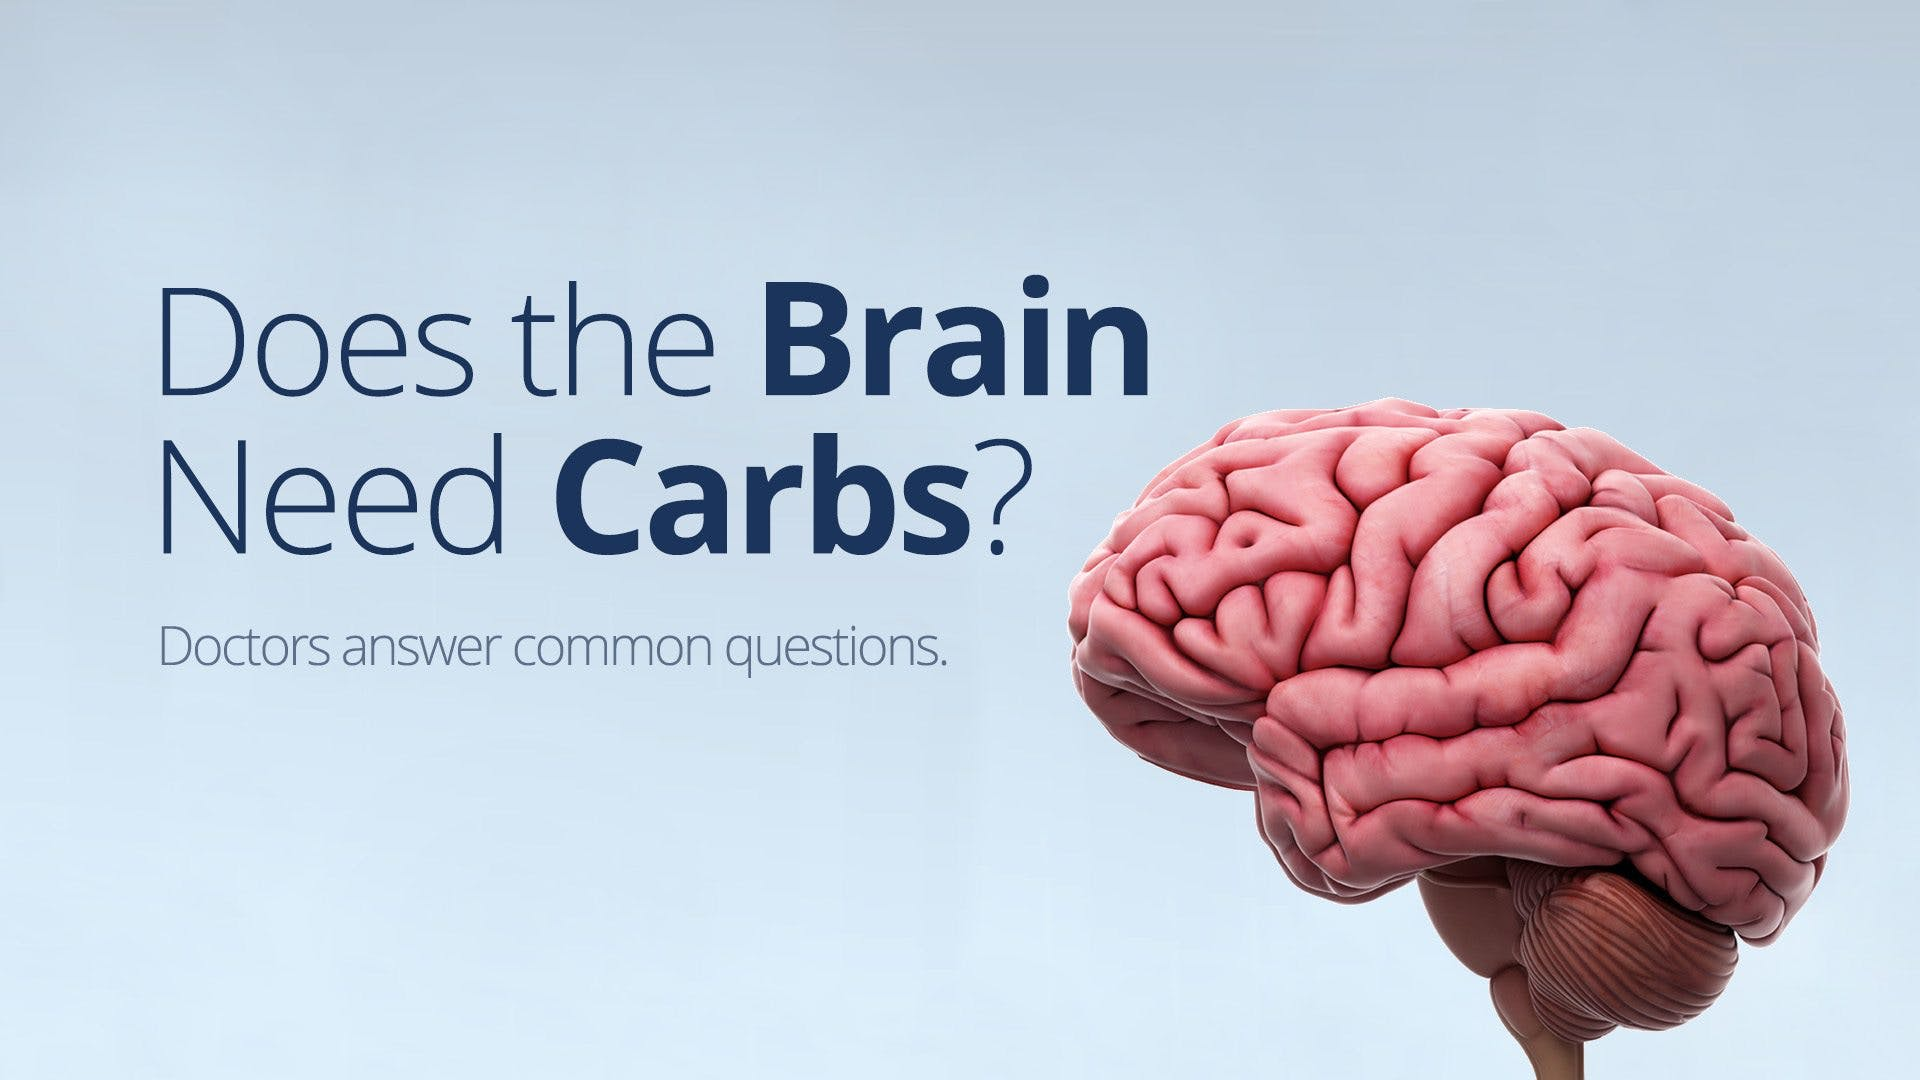 Does the Brain Need Carbohydrates? – Answers to Common Questions